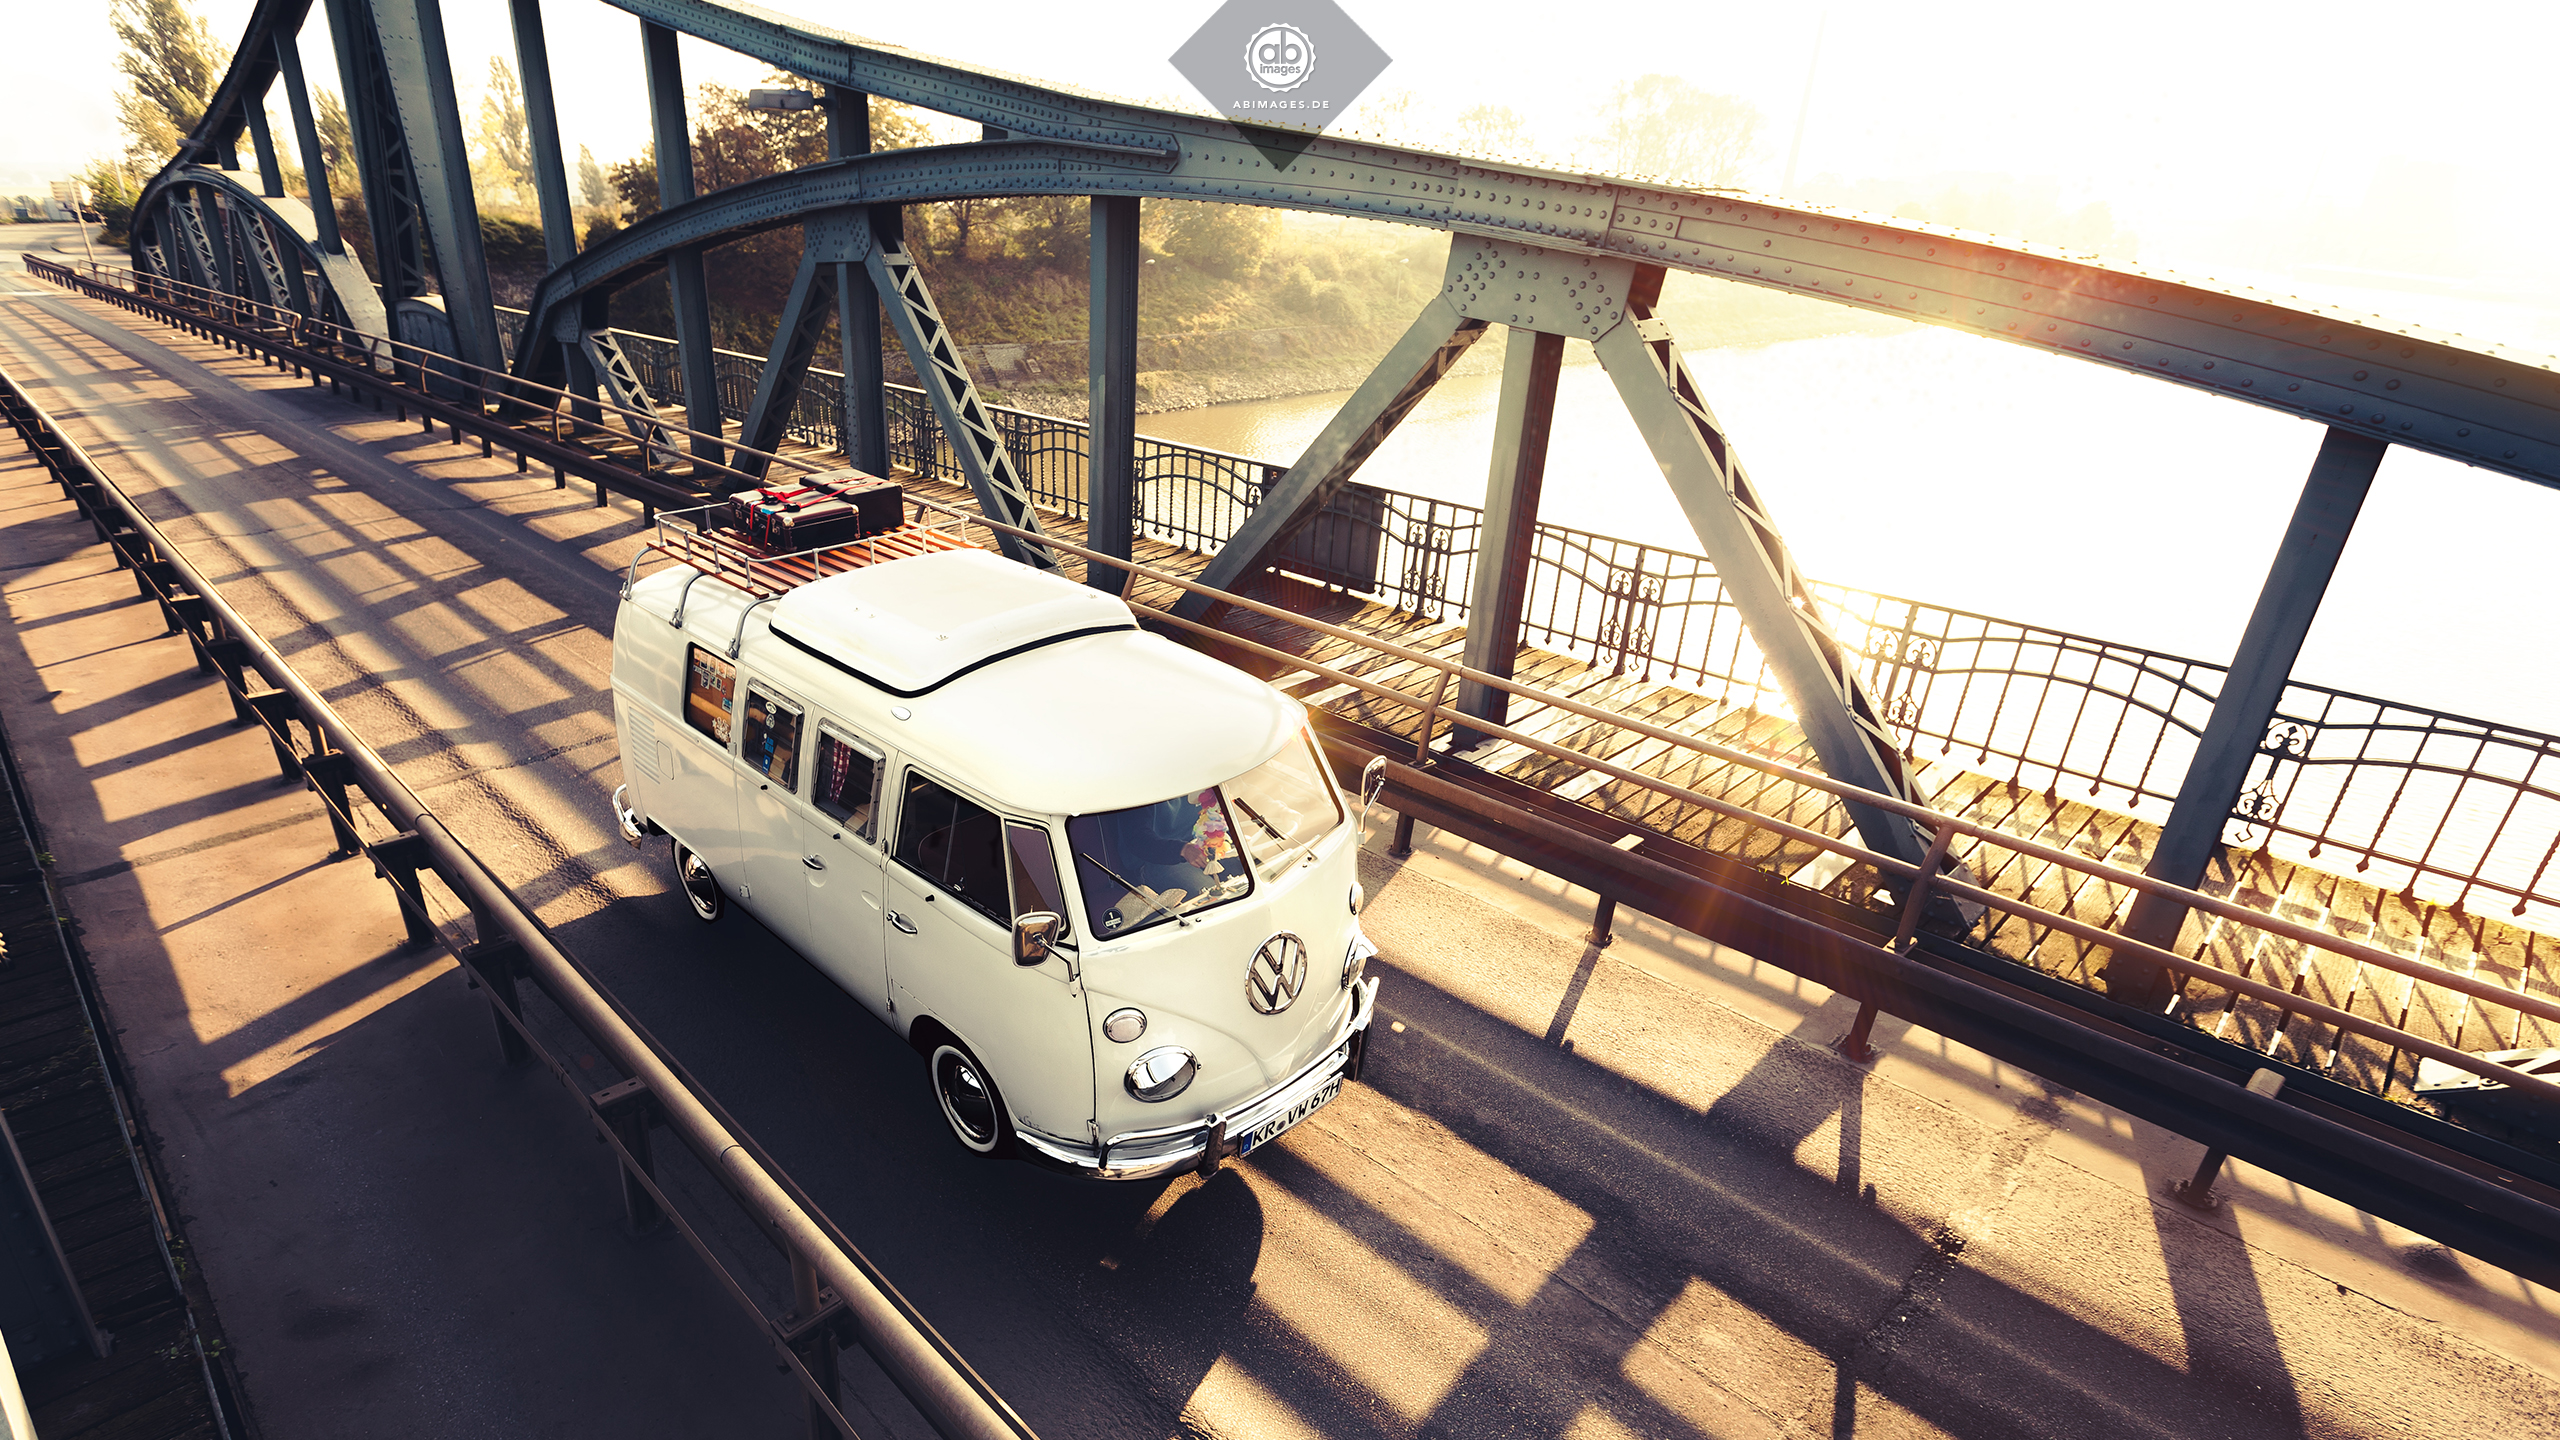 AB.IMAGES – VOLKSWAGEN VW T1 BULLI DESKTOP WALLPAPER